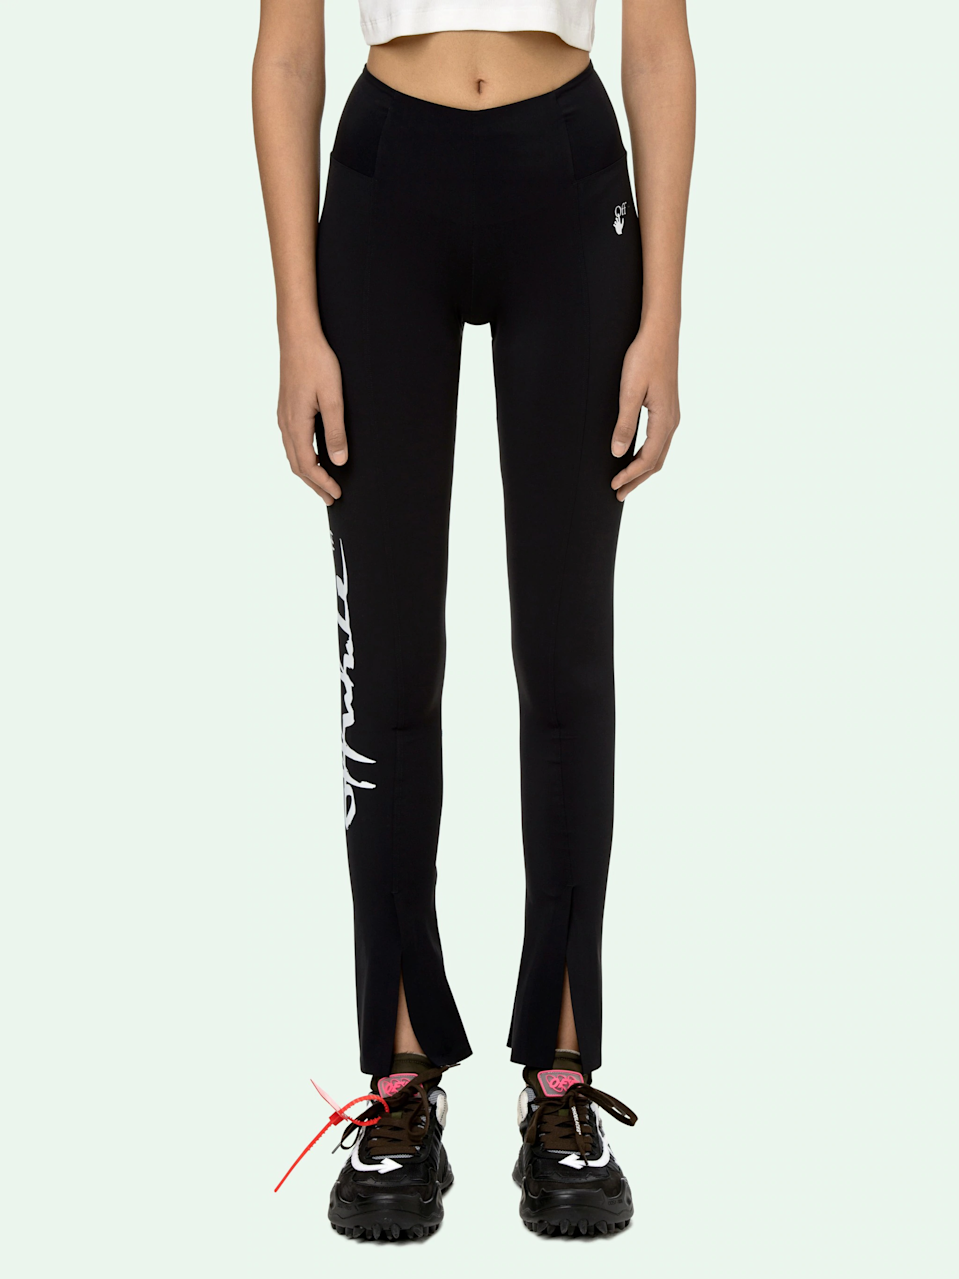 """<br><br><strong>Off White</strong> Split Leggings, $, available at <a href=""""https://go.skimresources.com/?id=30283X879131&url=https%3A%2F%2Fwww.off---white.com%2Fen-us%2Fshopping%2Foff-white-split-leggings-15284429"""" rel=""""nofollow noopener"""" target=""""_blank"""" data-ylk=""""slk:Off White"""" class=""""link rapid-noclick-resp"""">Off White</a>"""